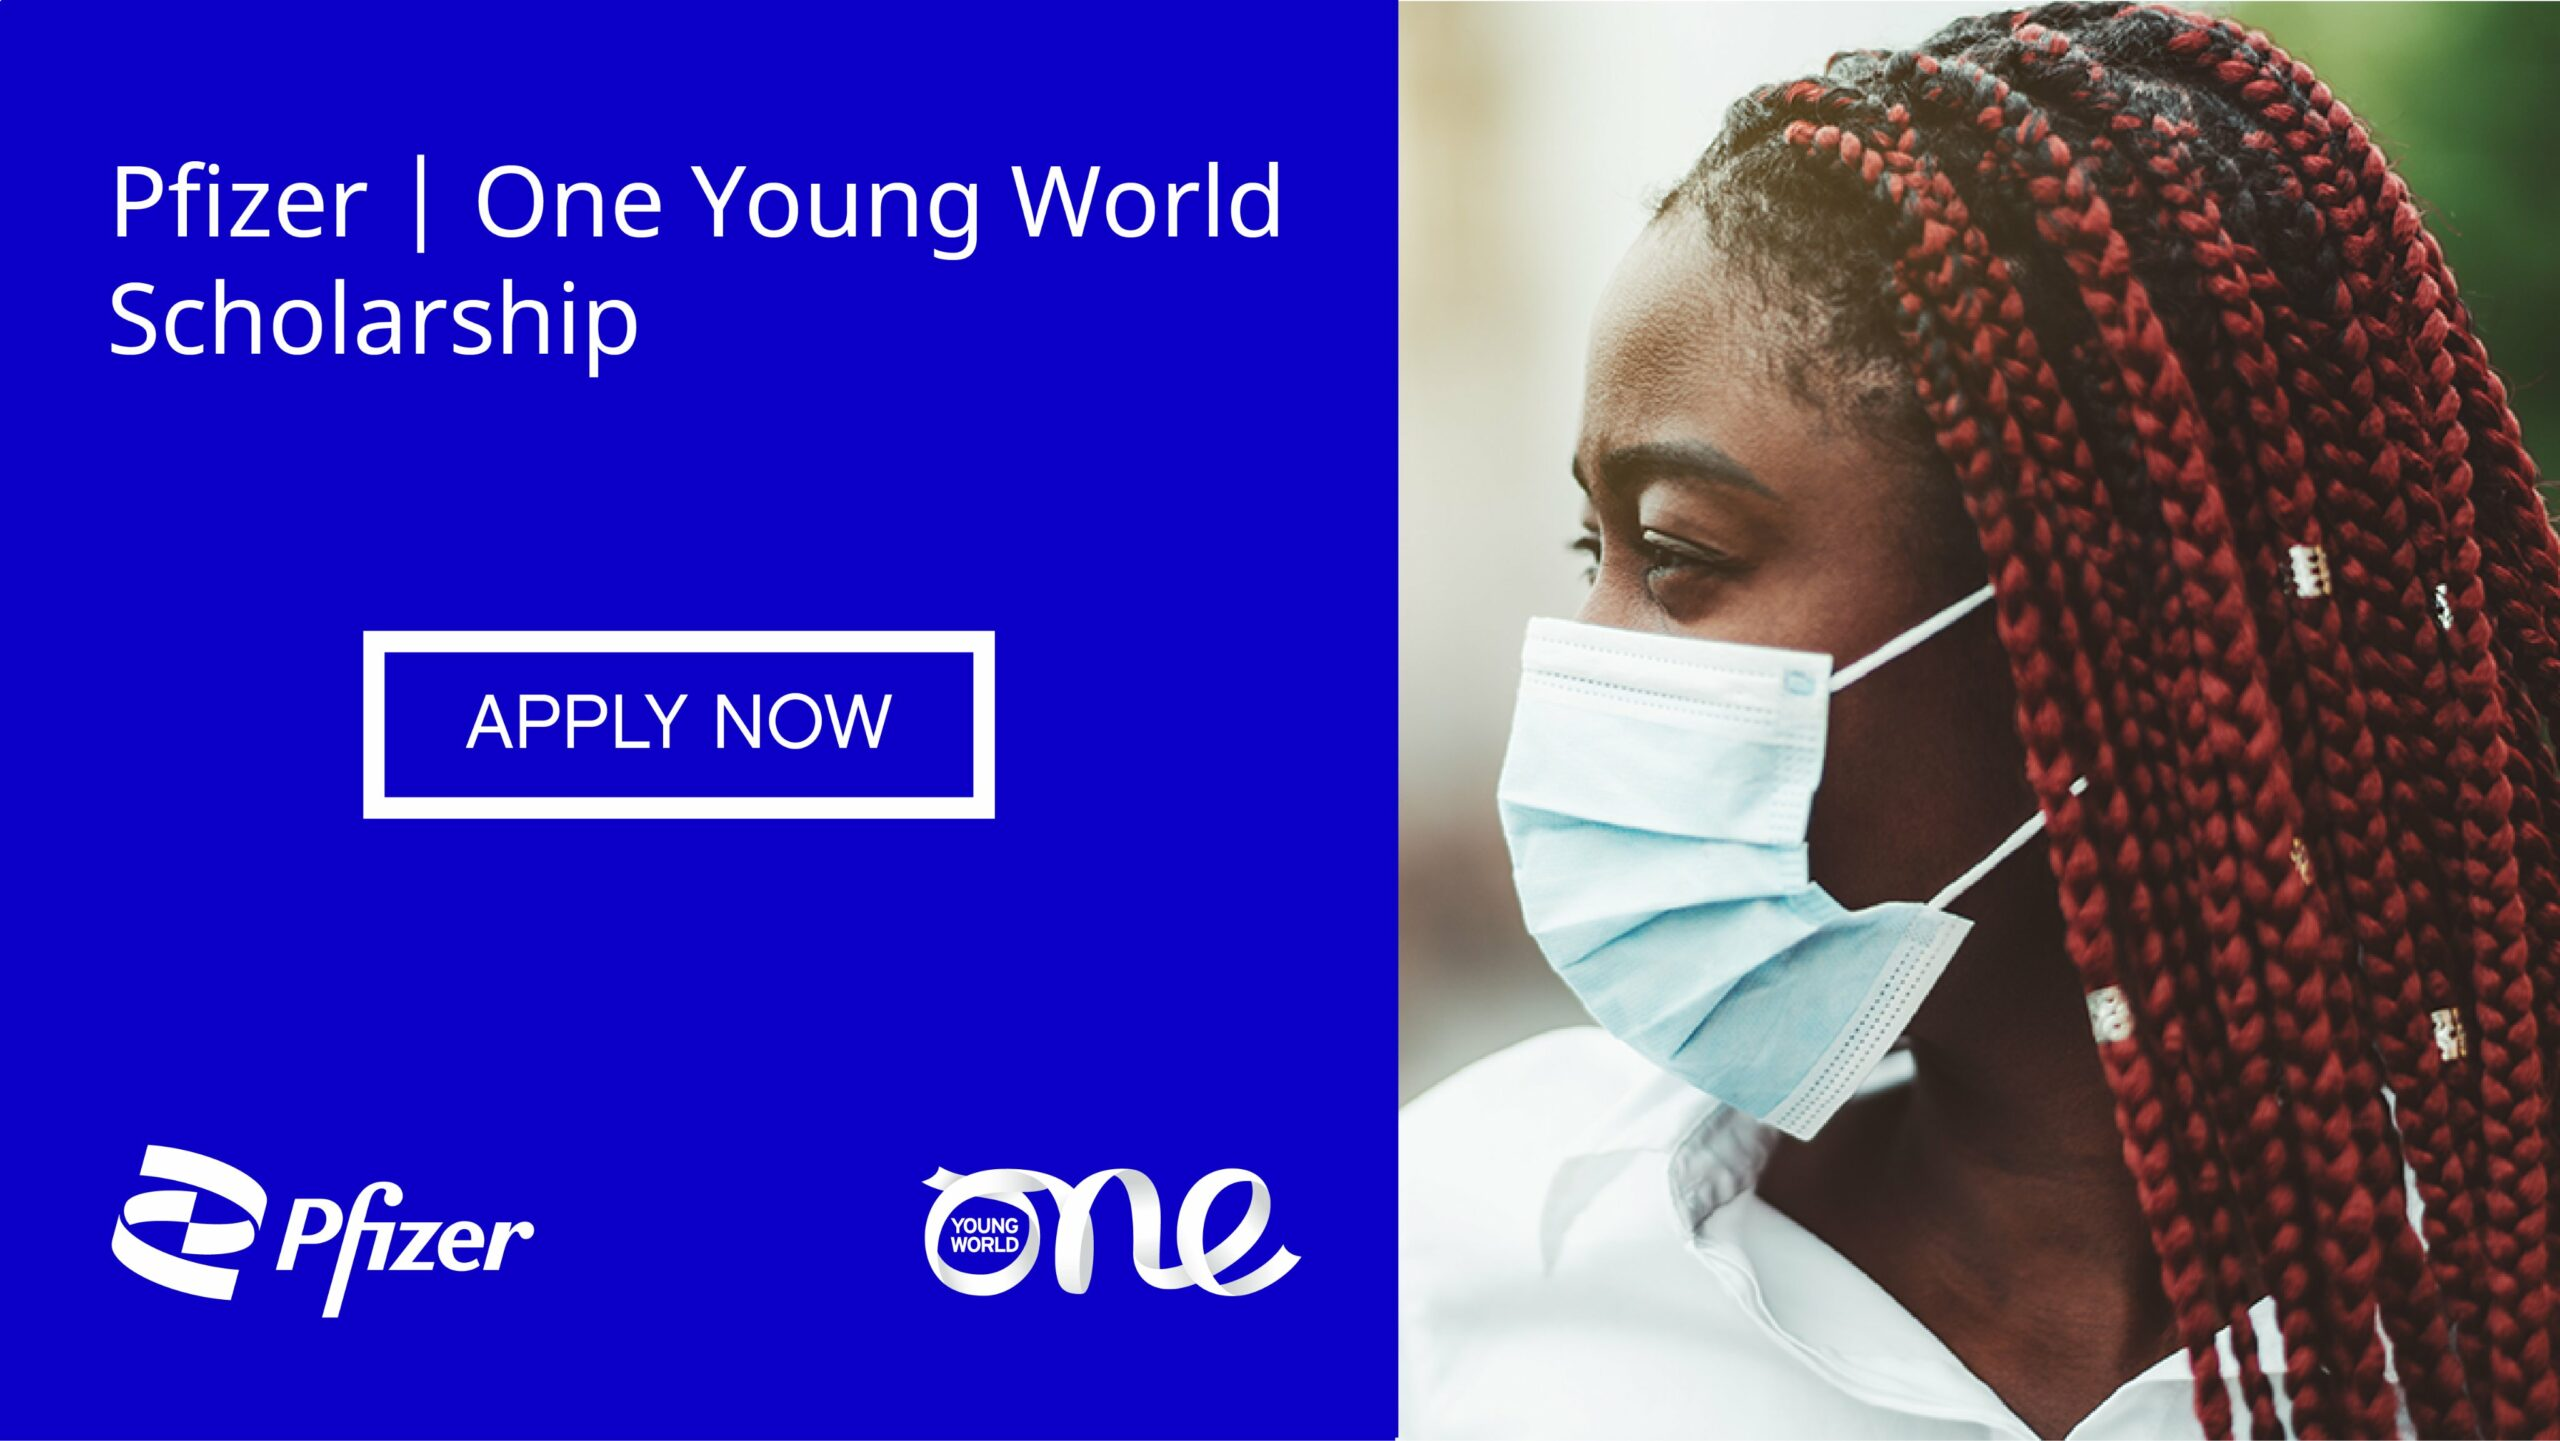 Pfizer – One Young World Scholarship to Attend the OYW Summit 2021 in Munich, Germany